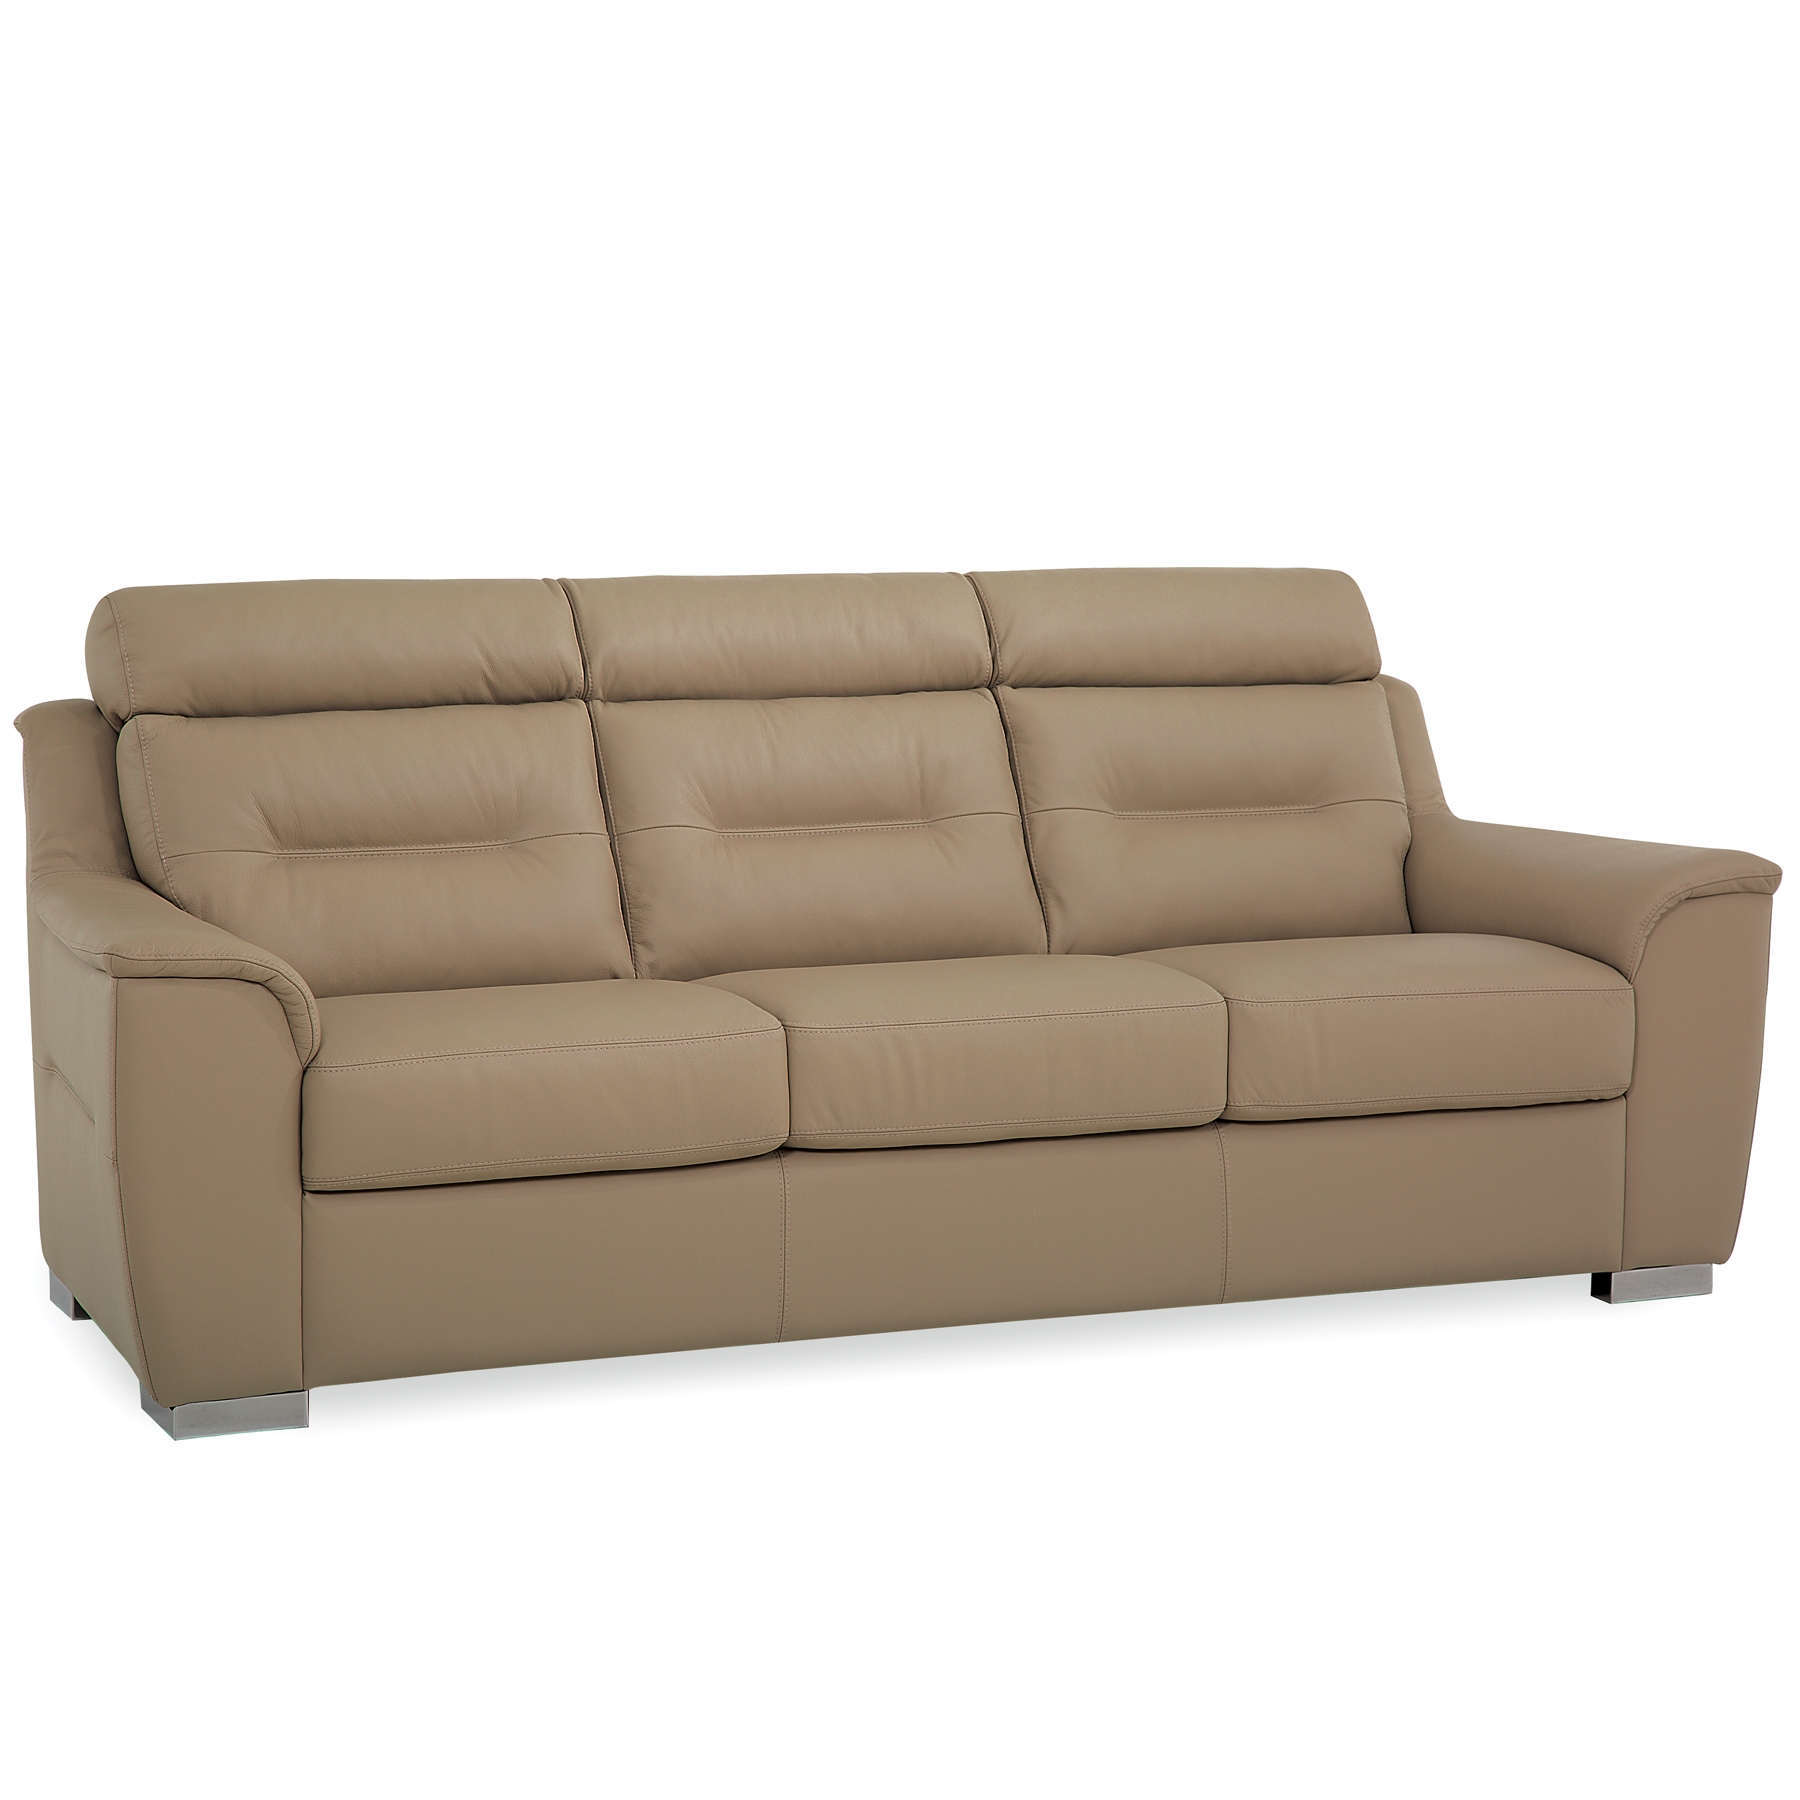 Denmark 90 Sofa 350 Fabrics And Sofas And Sectionals